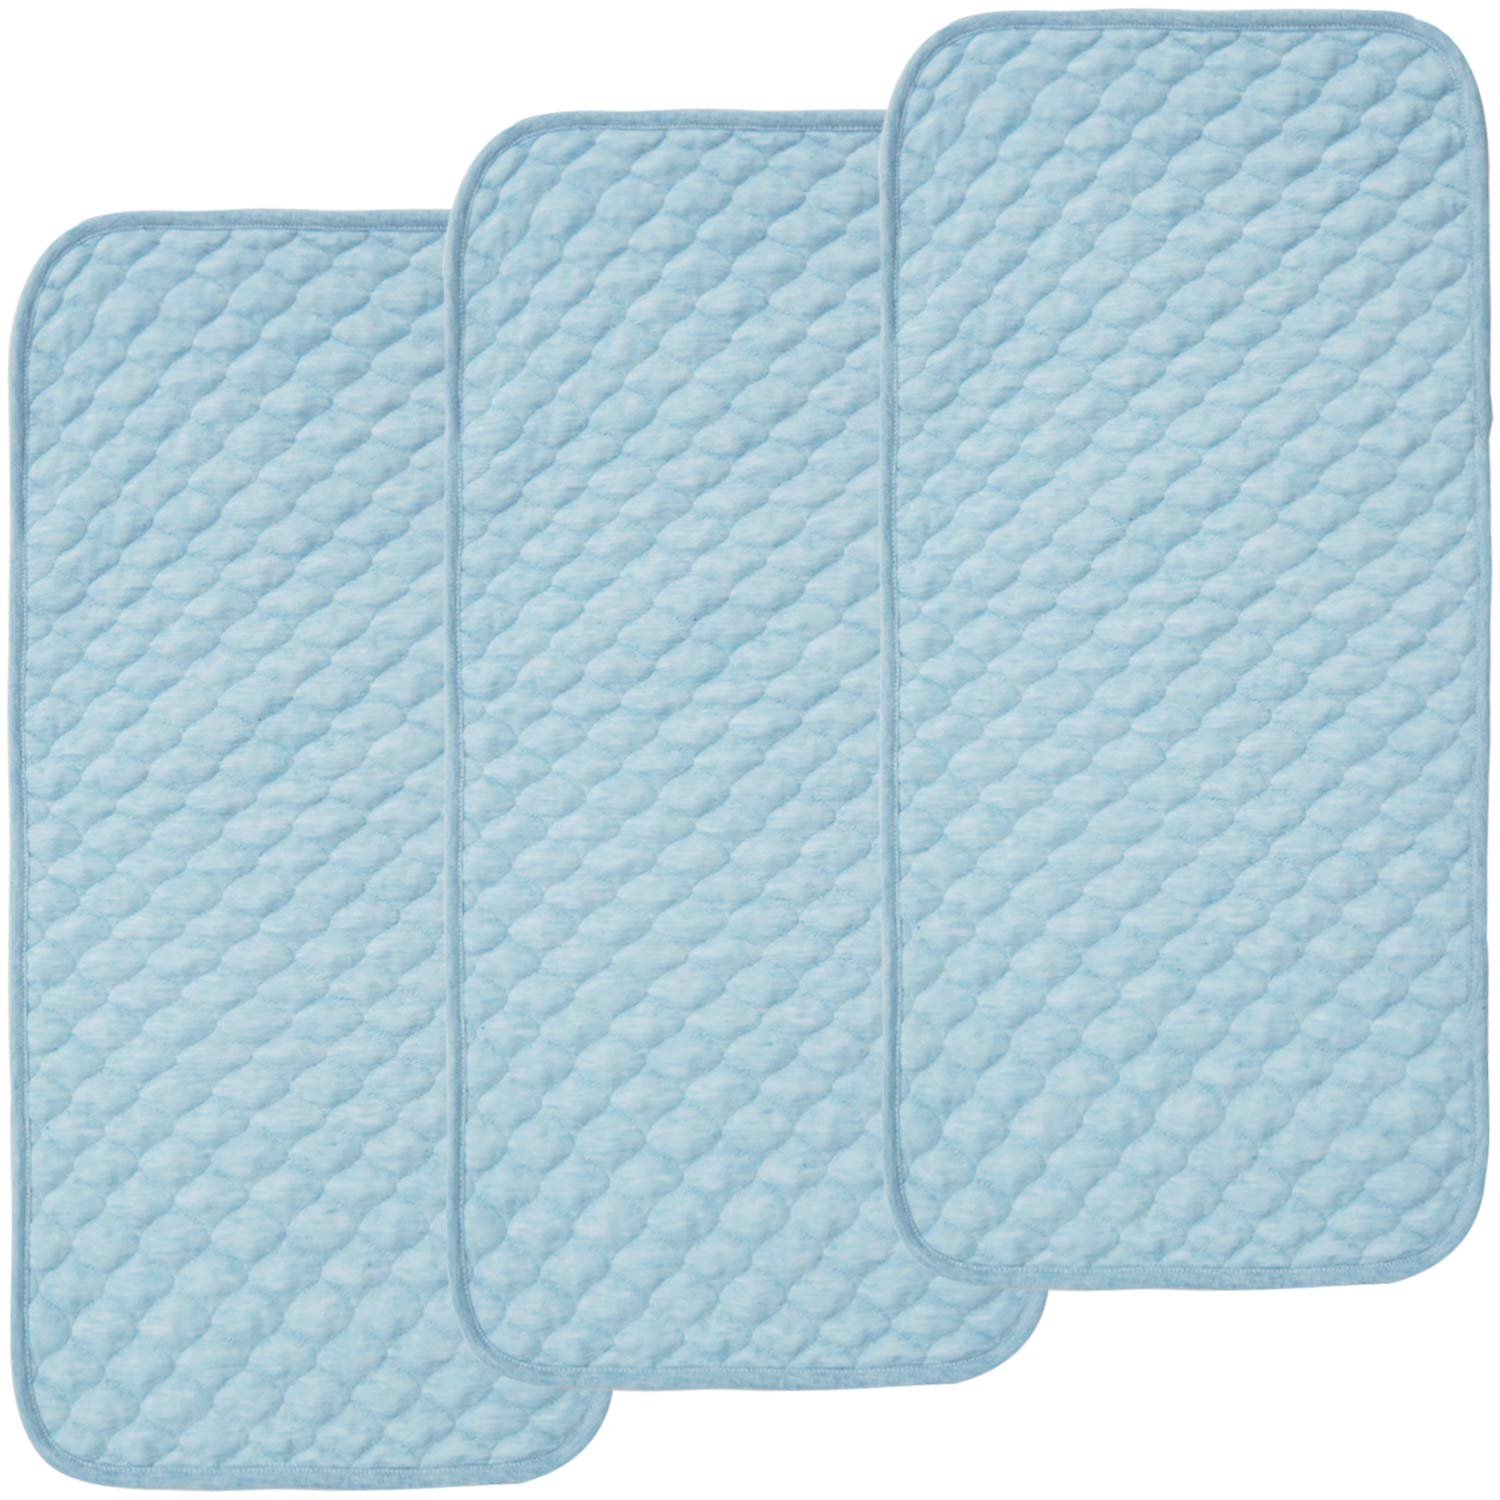 Quilted Thicker Longer Waterproof Changing Pad Liners for Babies 3 Count by BlueSnail White